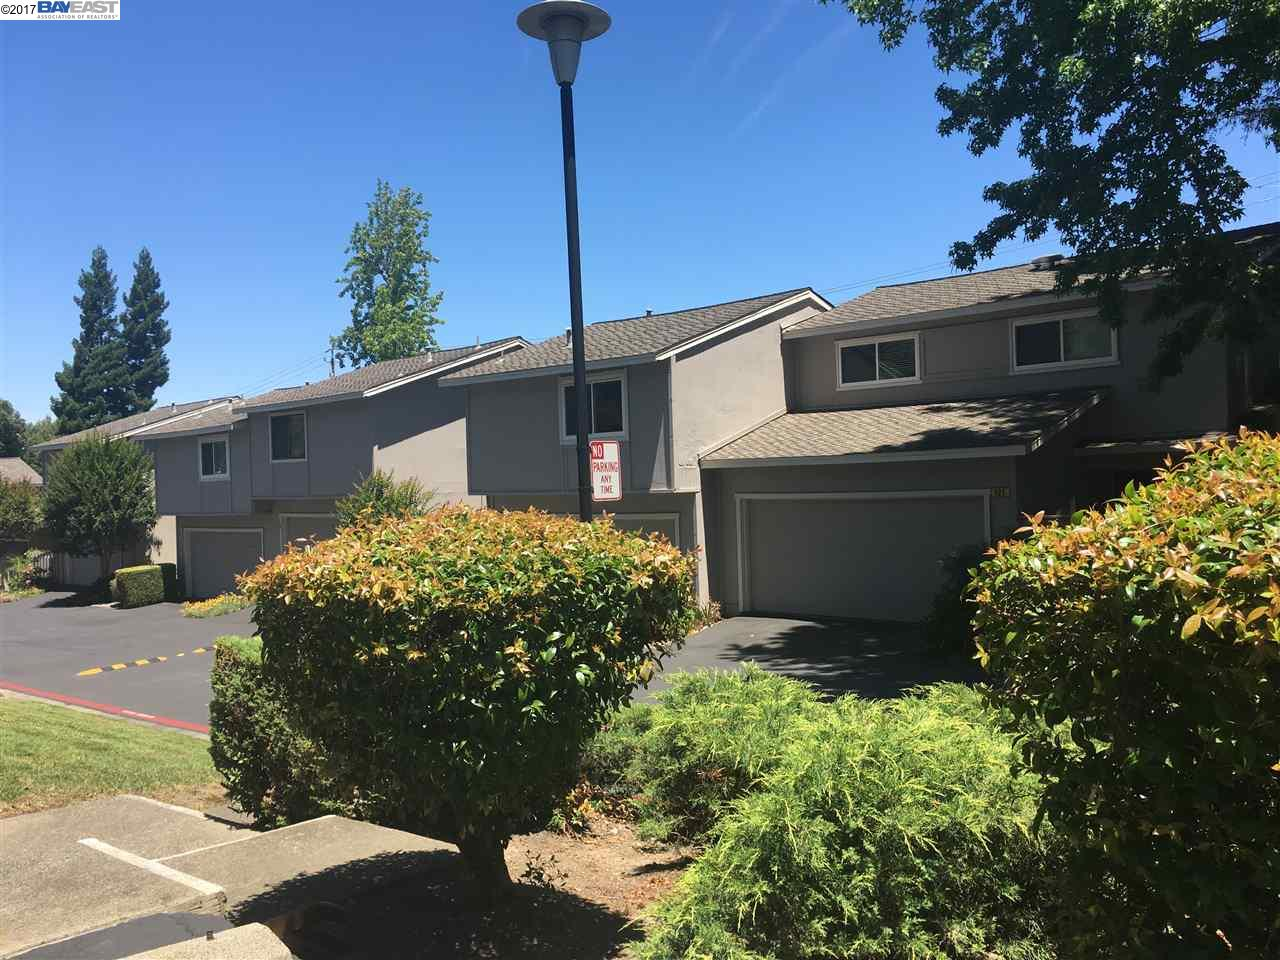 Townhouse for Rent at 117 WESTFIELD Circle Danville, California 94526 United States